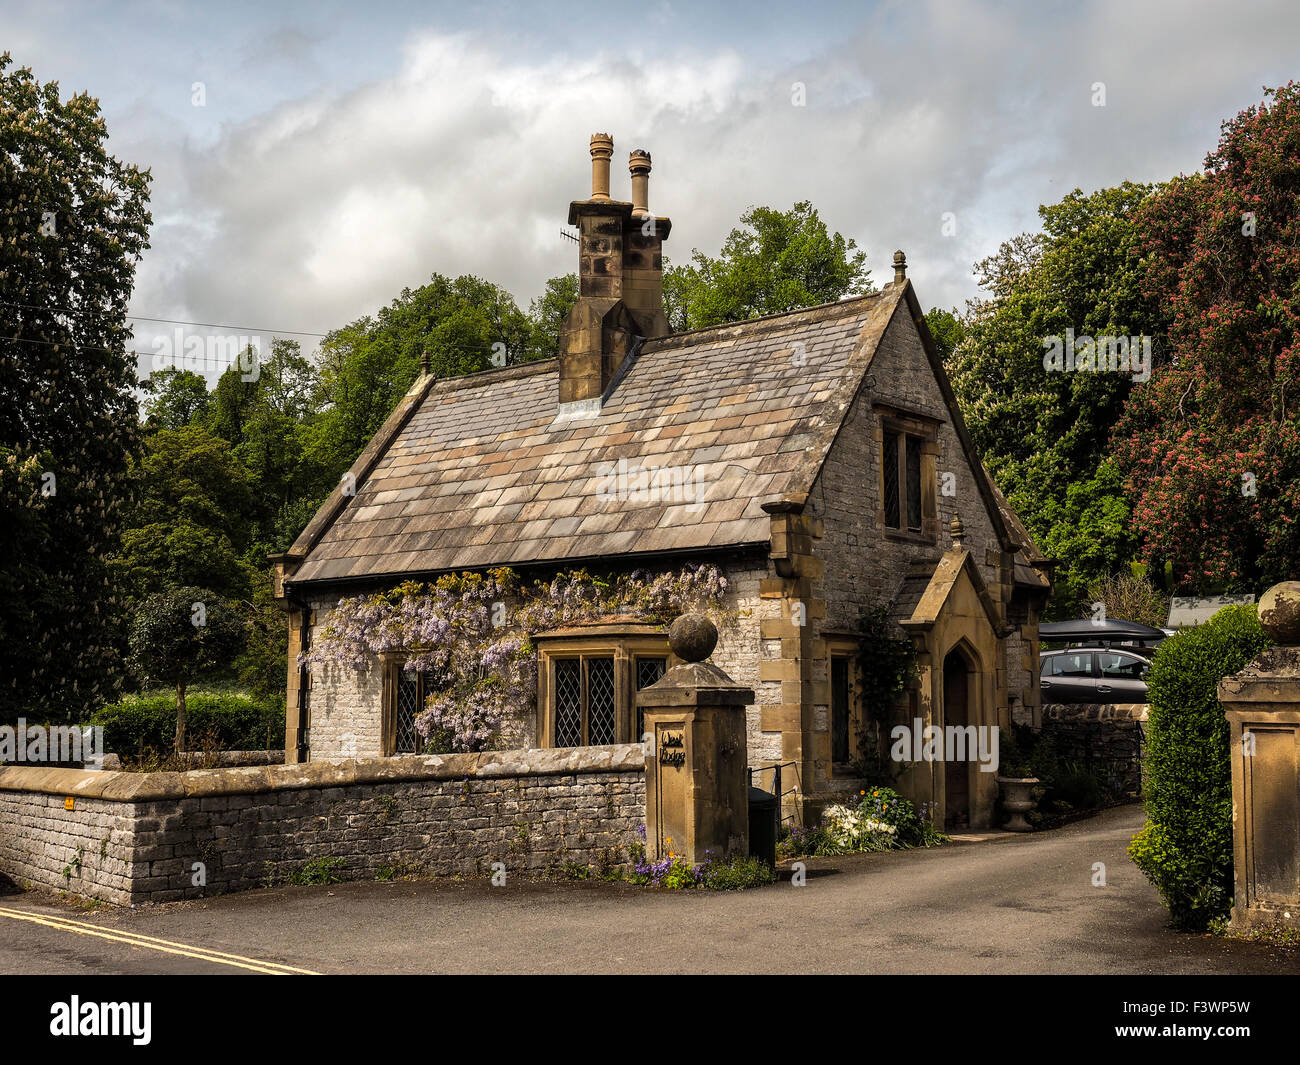 Small stone cottage in Derbyshire England Stock Photo